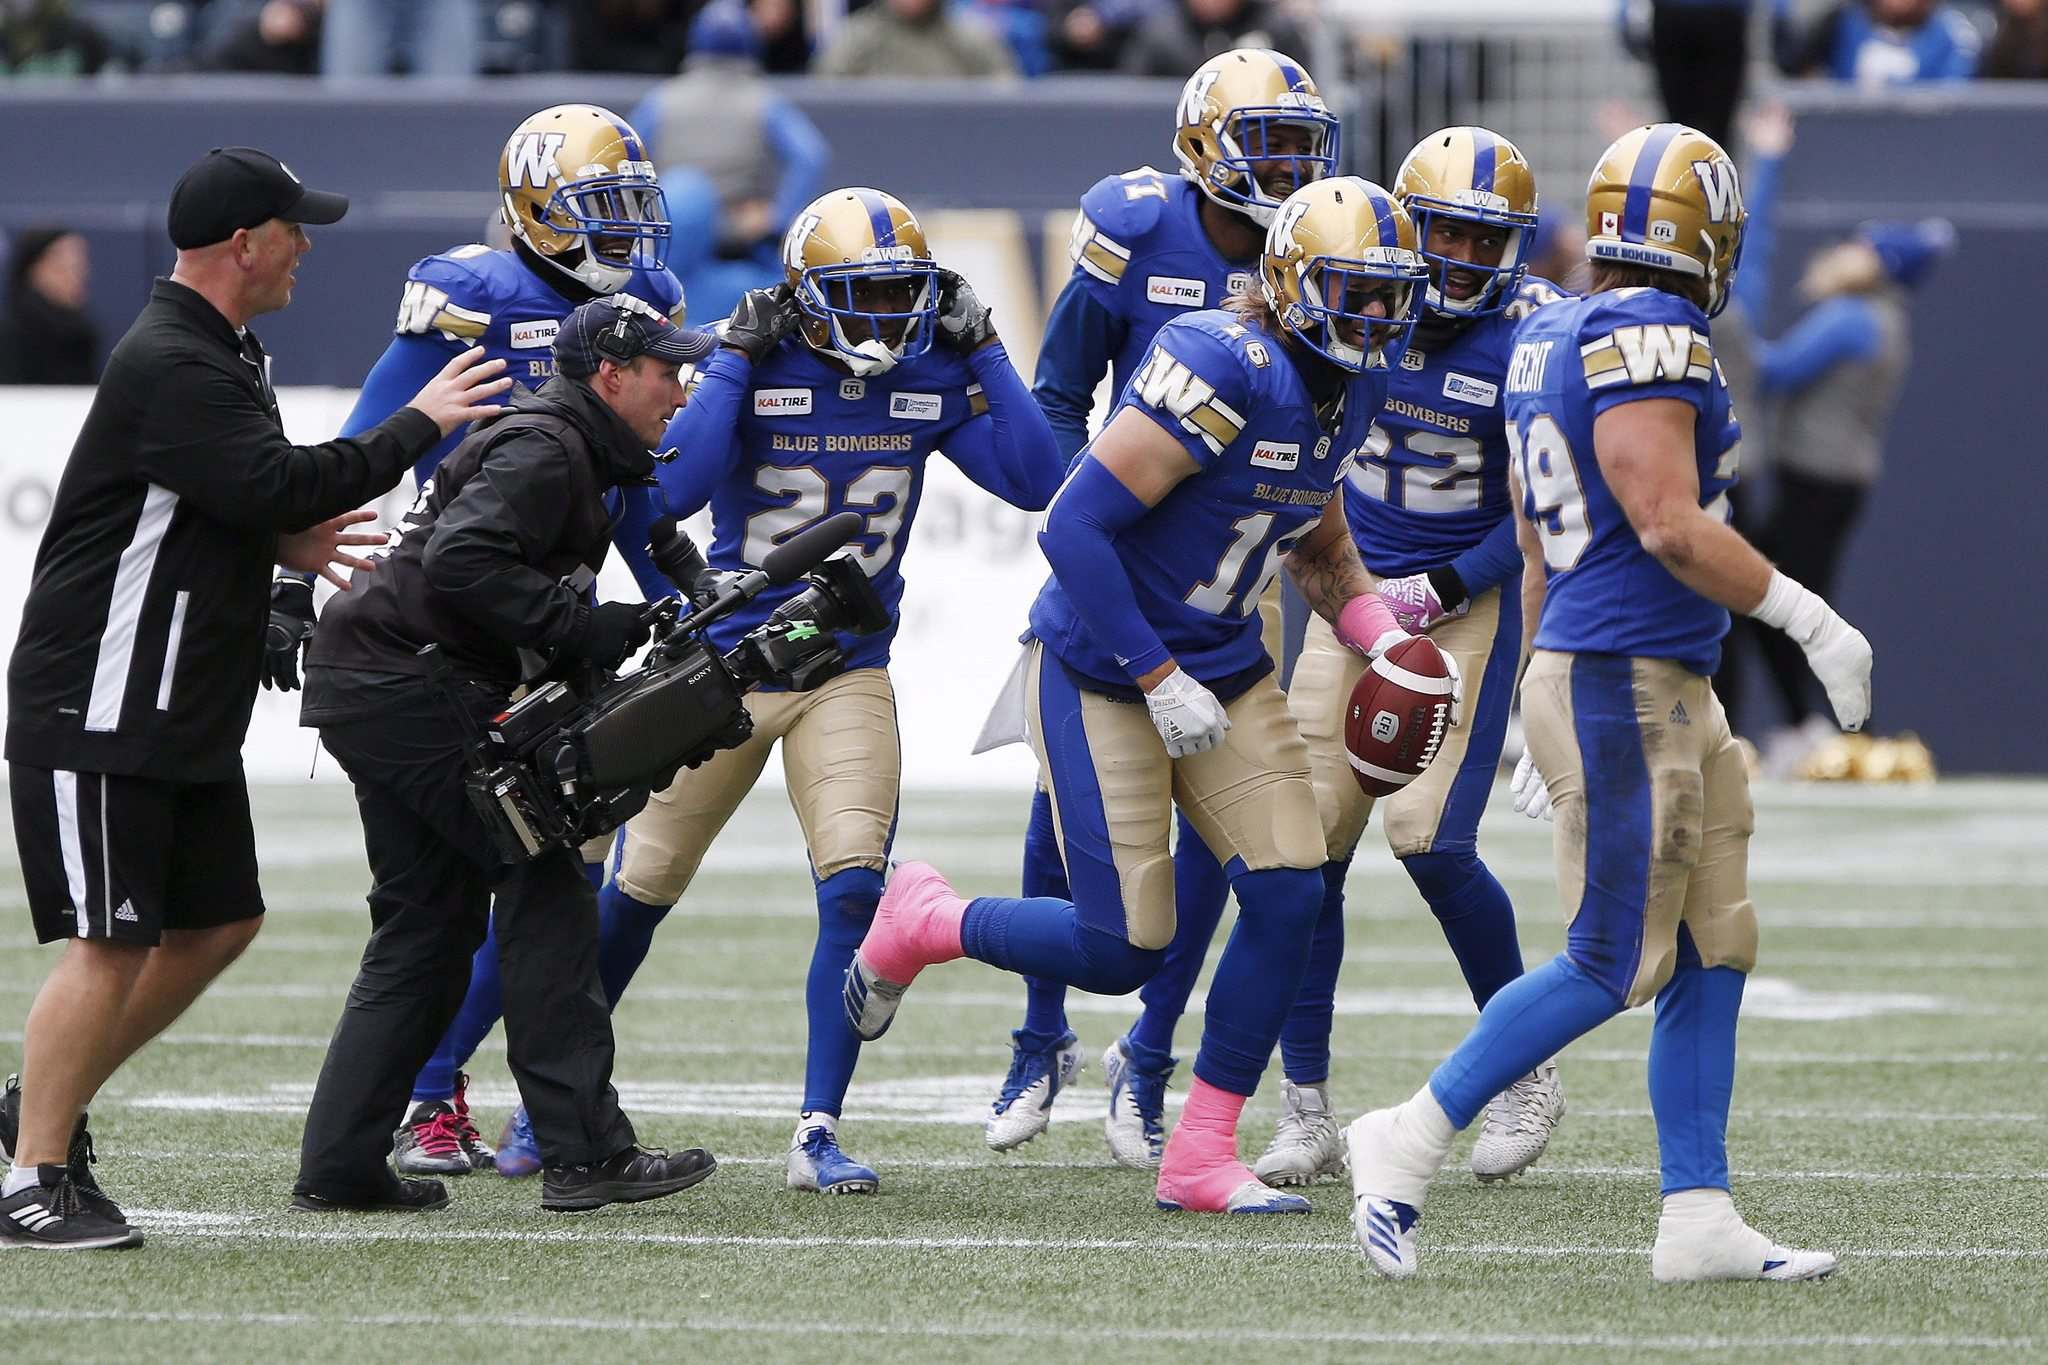 JOHN WOODS / THE CANADIAN PRESS</p><p>The Blue Bombers celebrates Taylor Loffler's interception during Saturday's game against the Roughriders.</p>